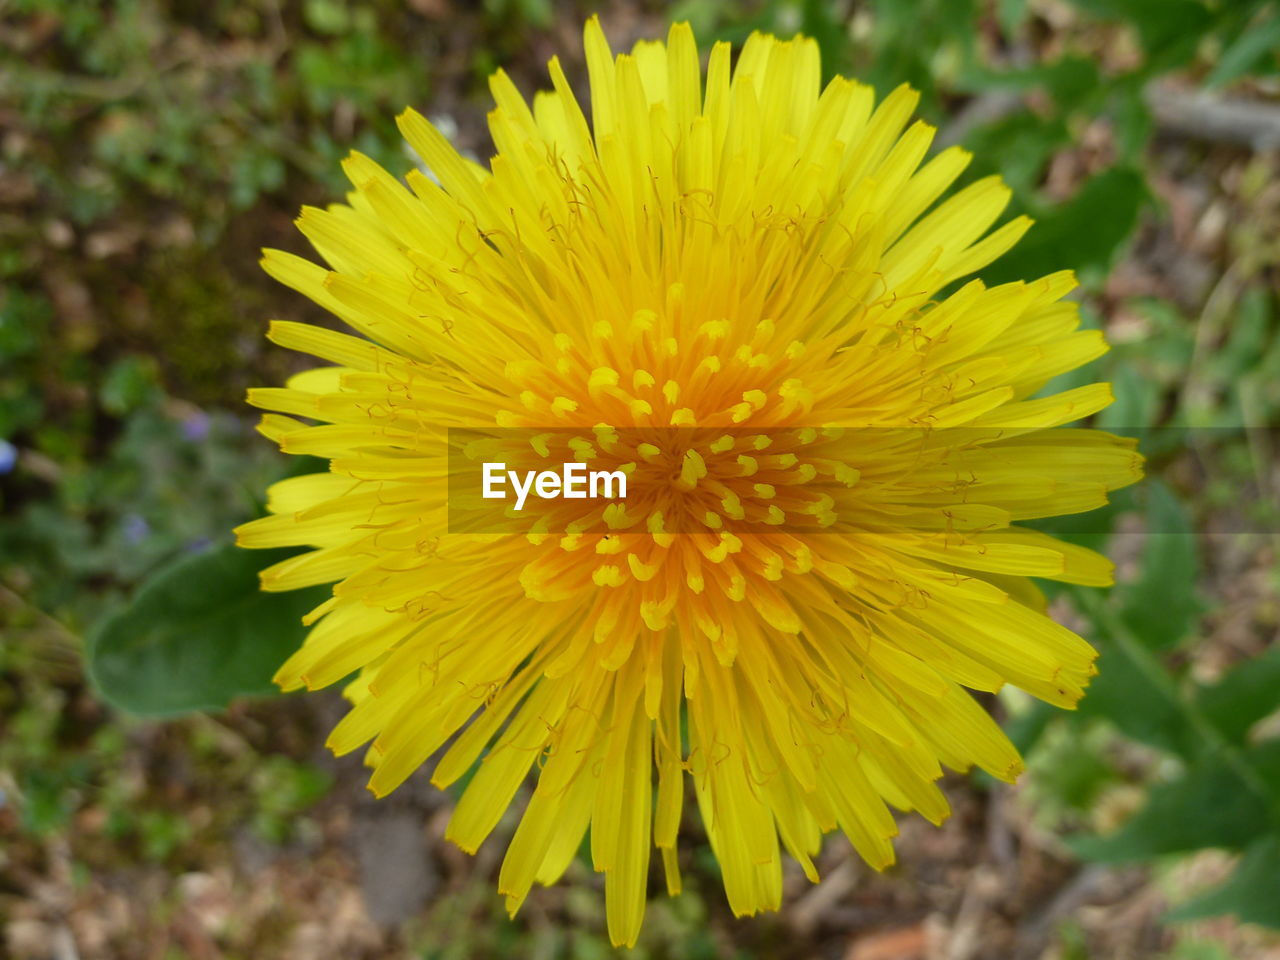 CLOSE-UP OF YELLOW FLOWER BLOOMING IN PARK